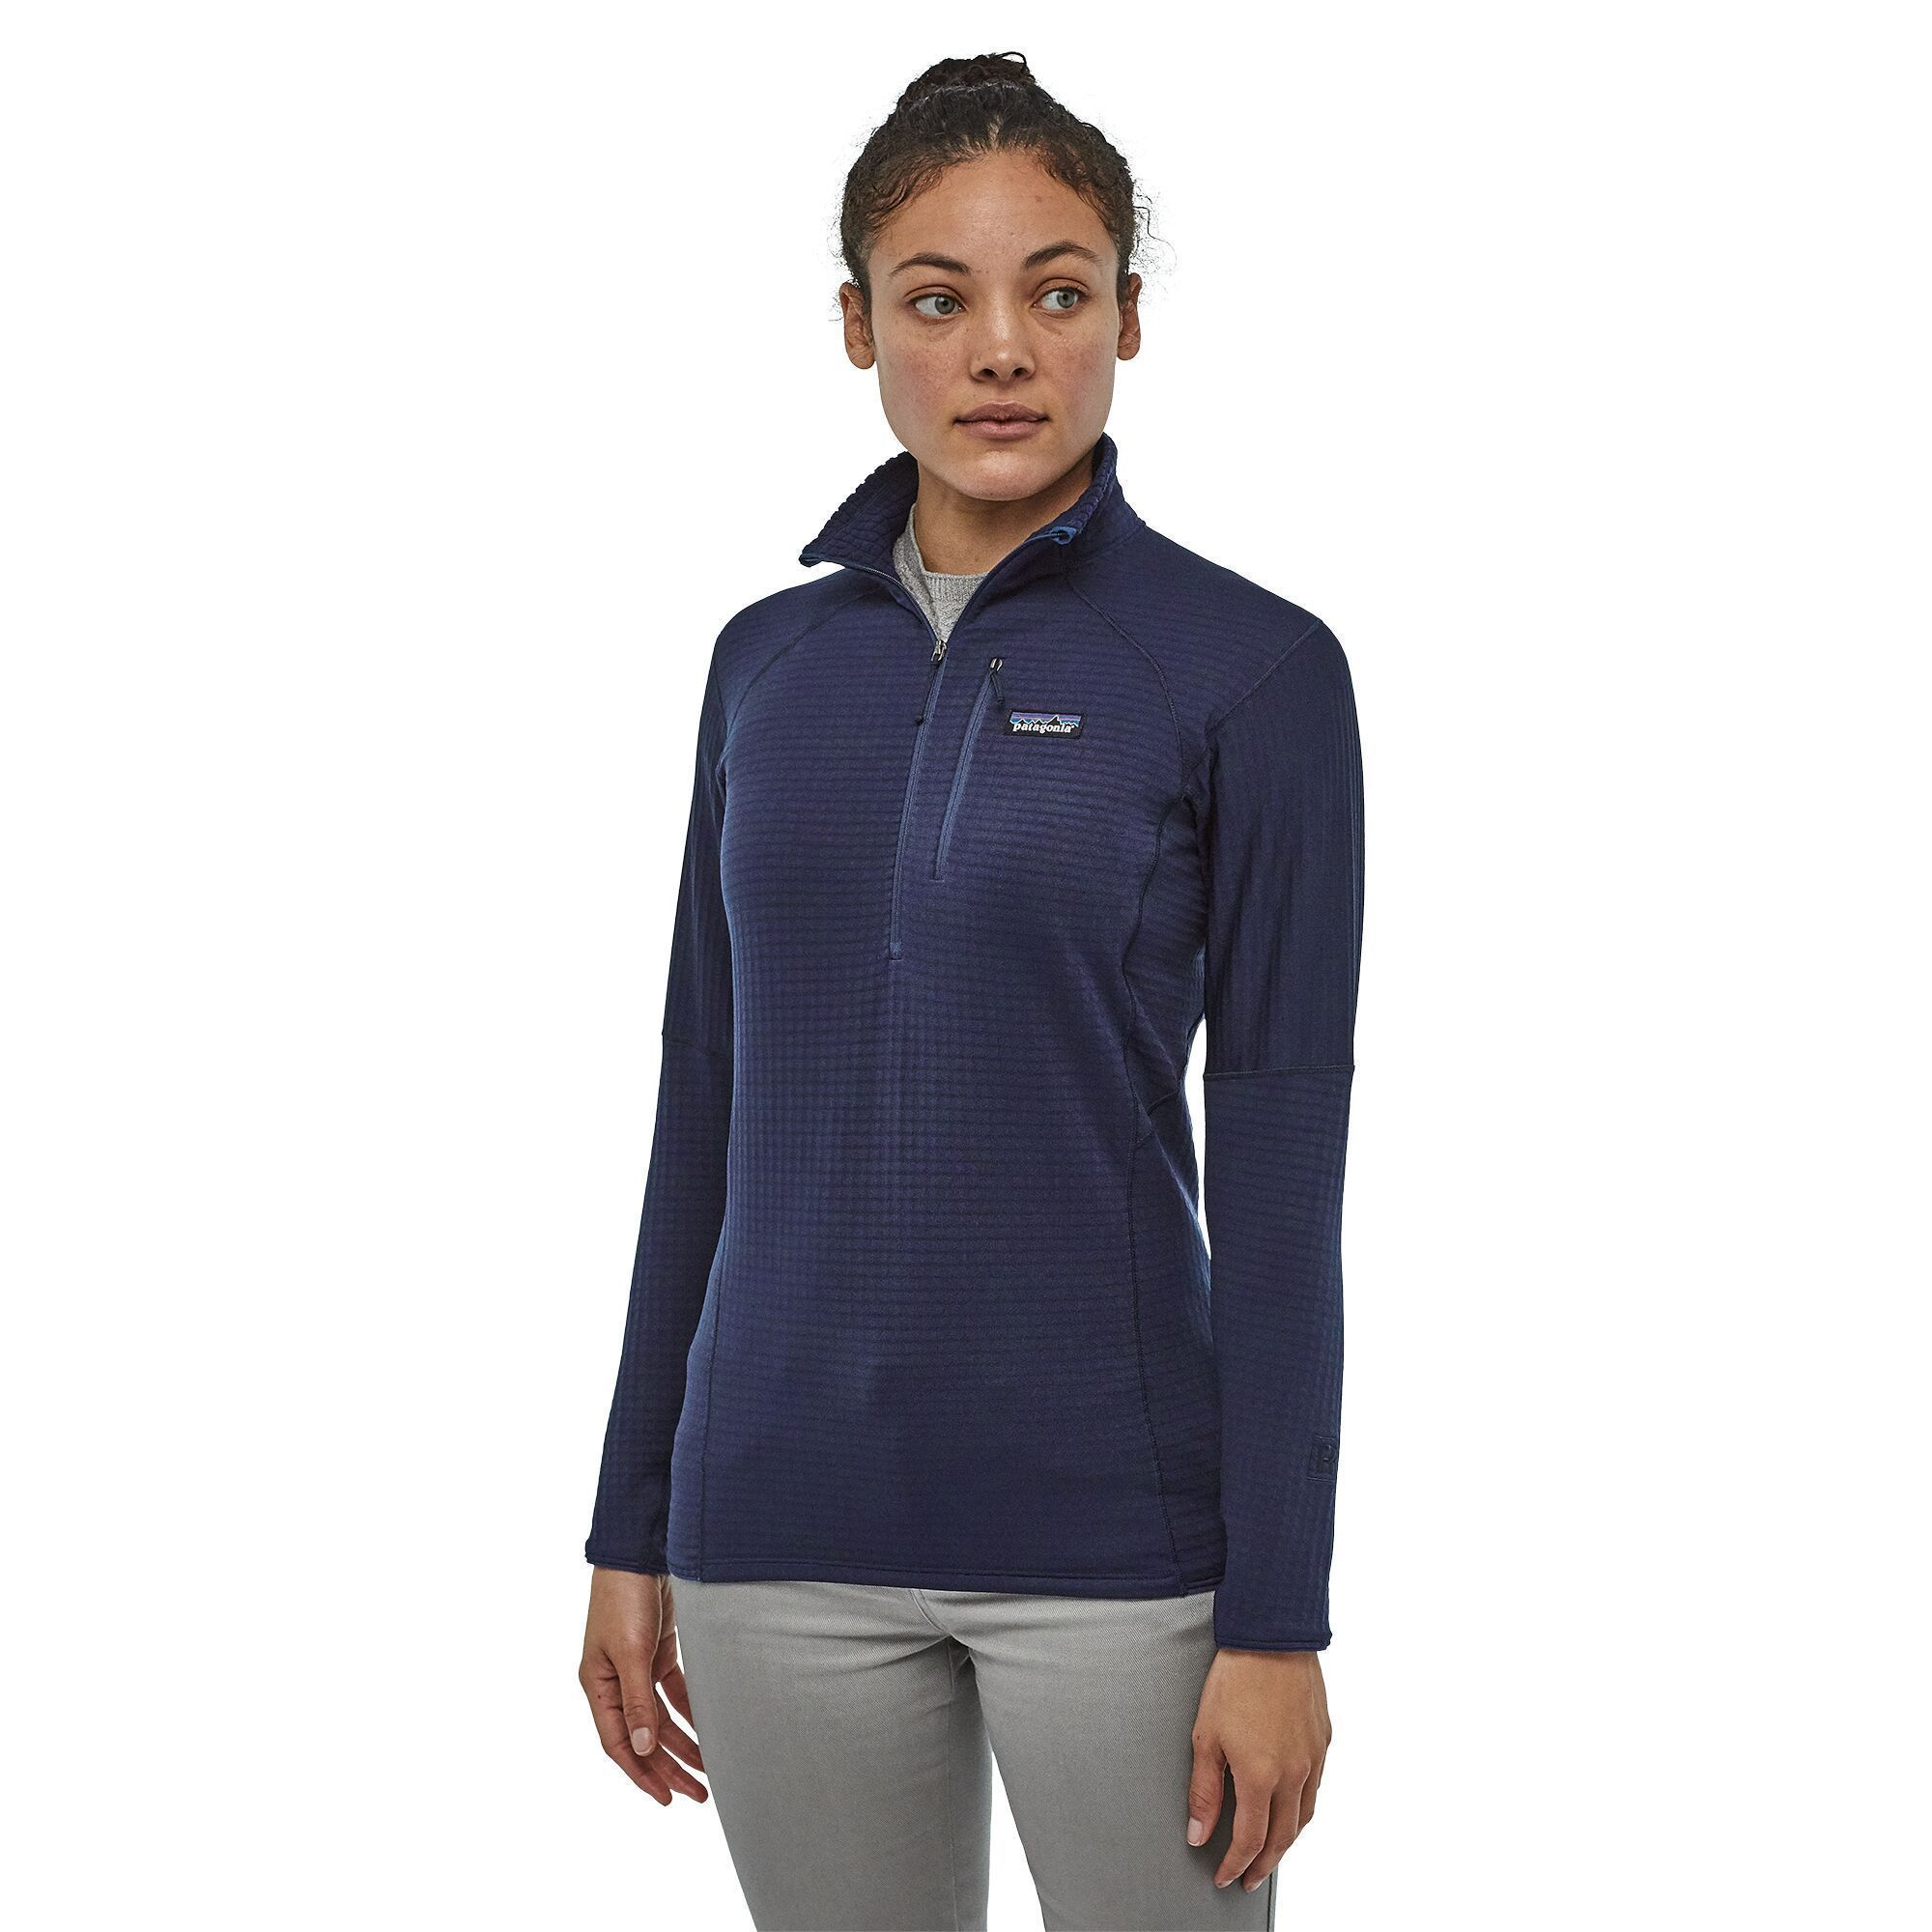 Patagonia - W's R1® Fleece Pullover - Recycled Polyester - Weekendbee - sustainable sportswear